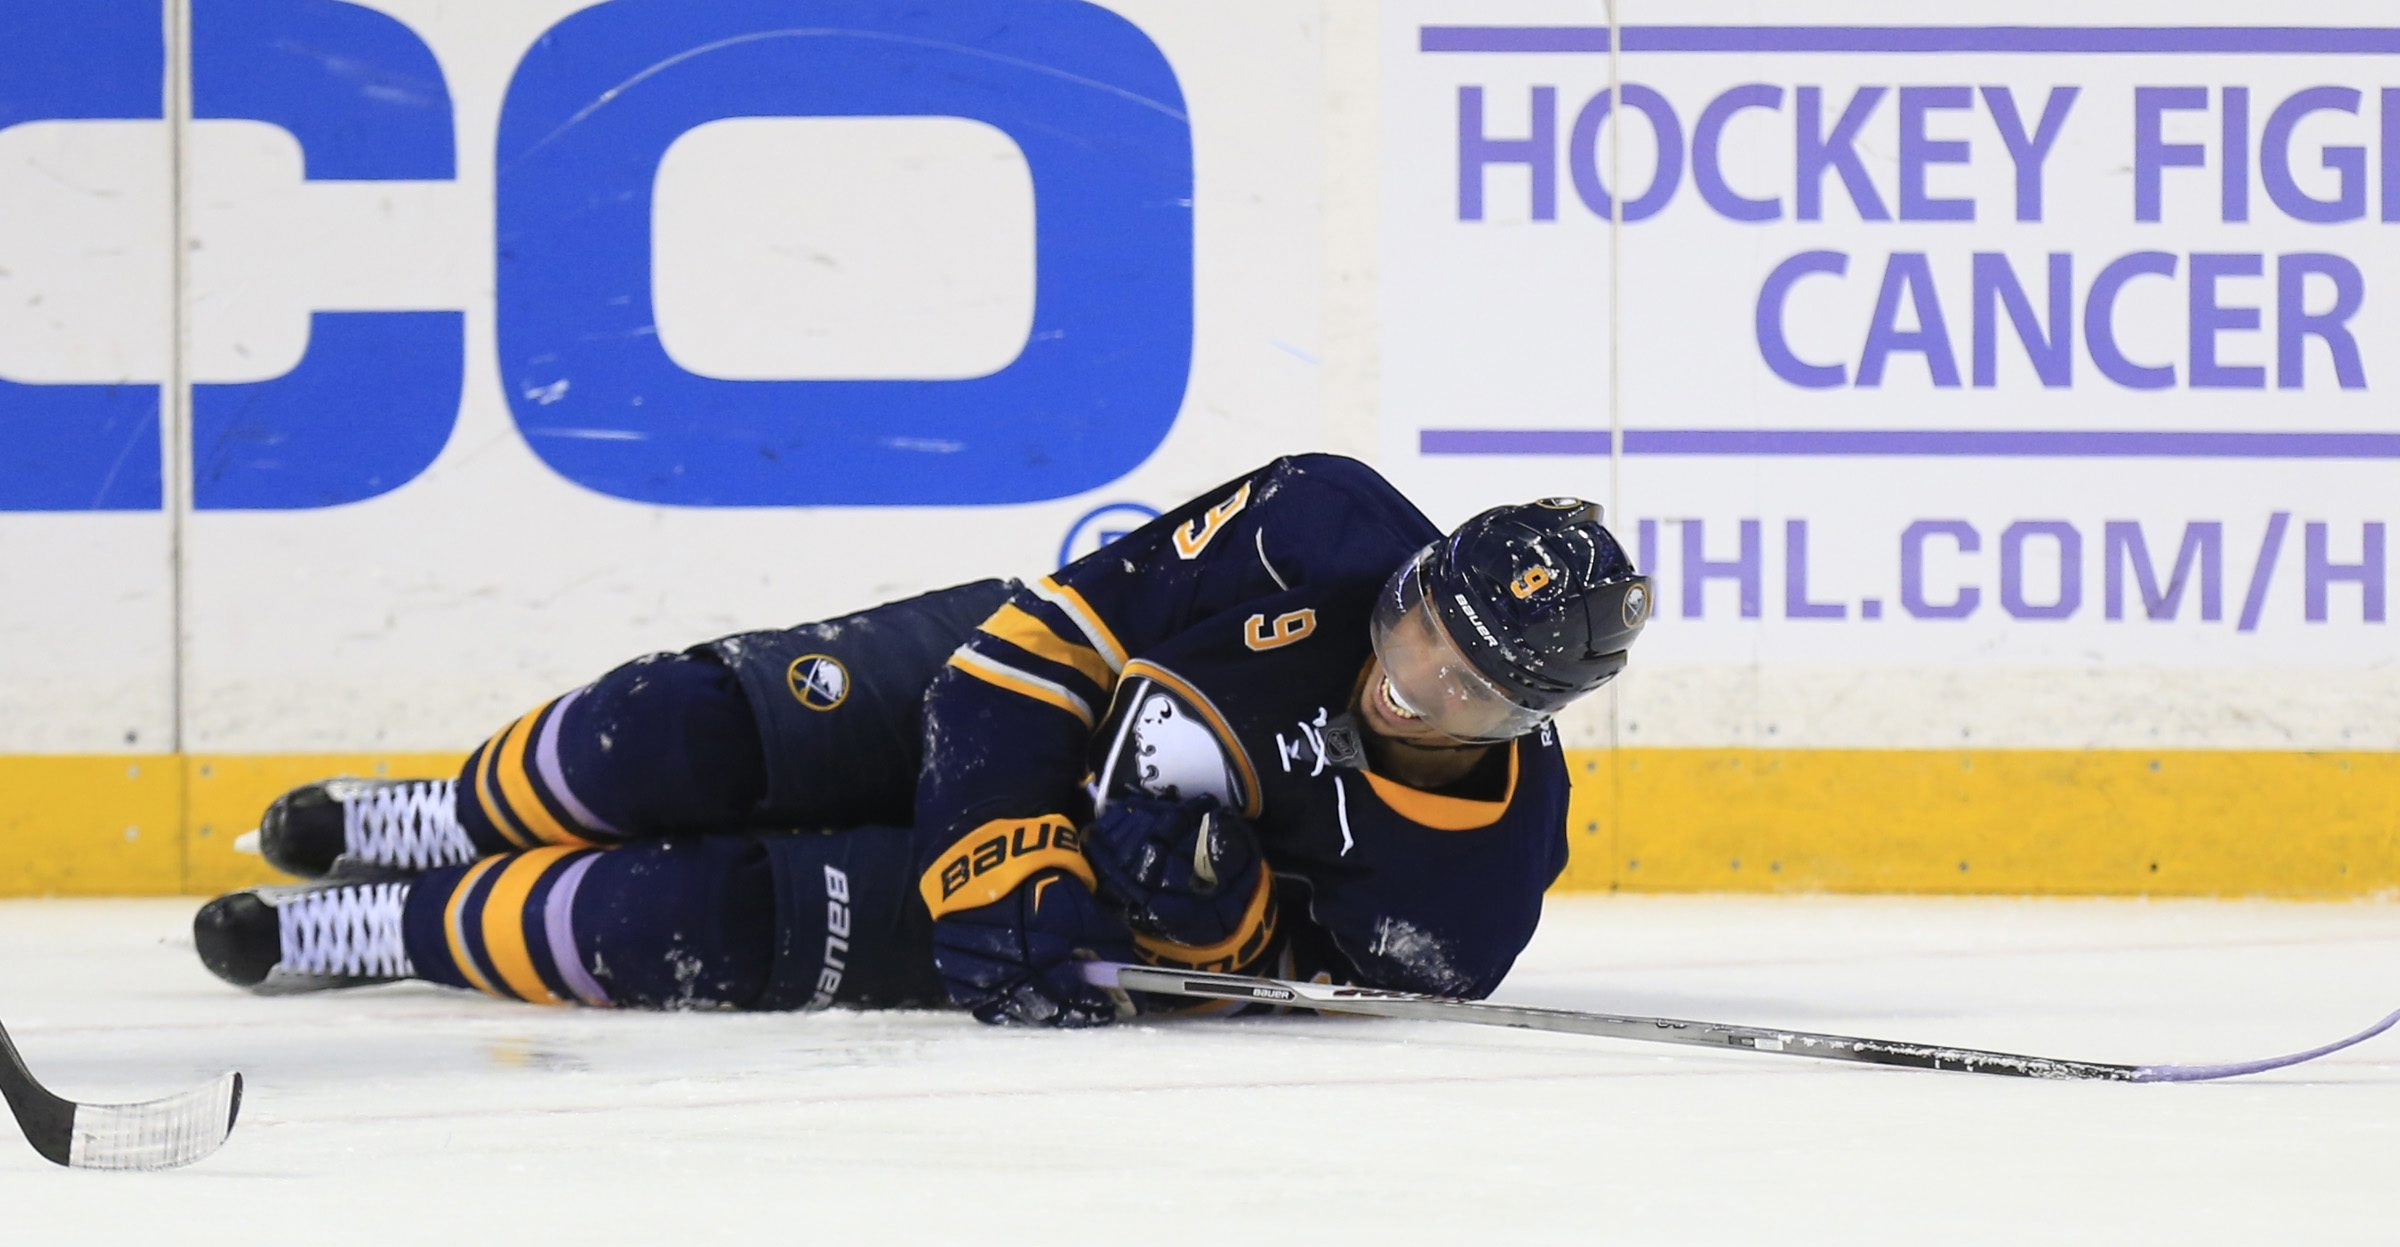 Sabres forward Evander Kane will miss four to six weeks with an injury to a ligament in his left knee. He will not need surgery.